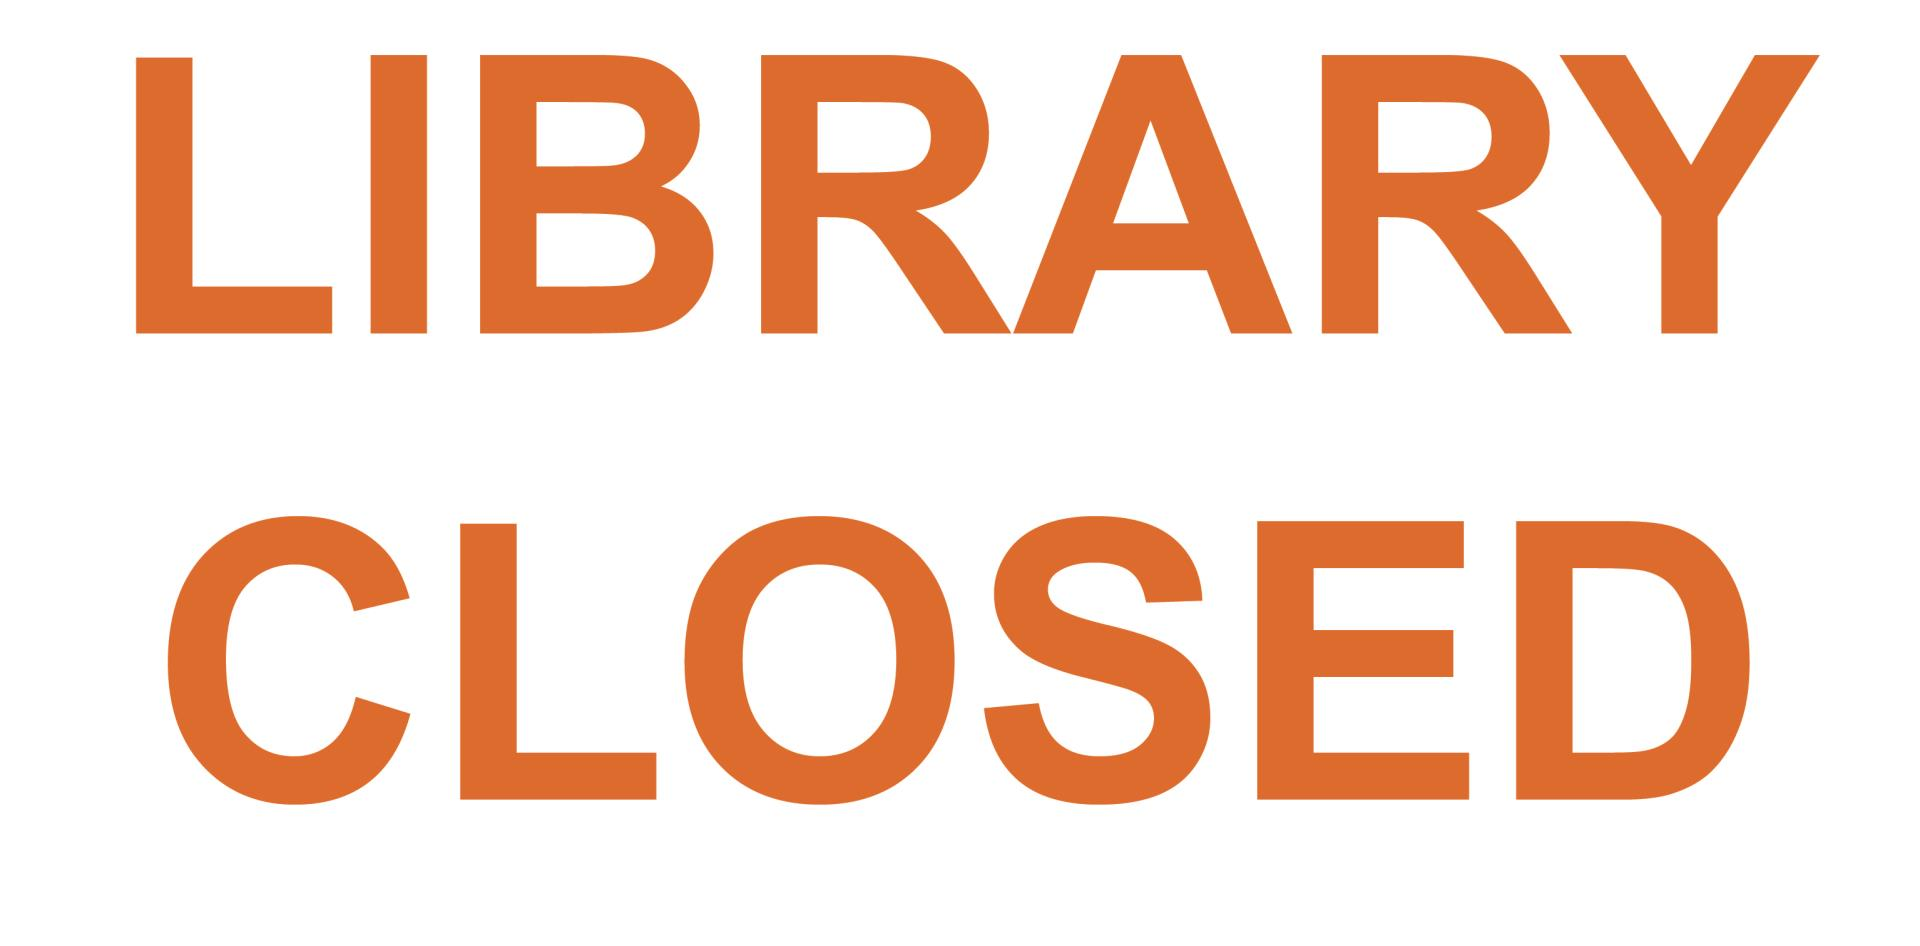 Library Closure